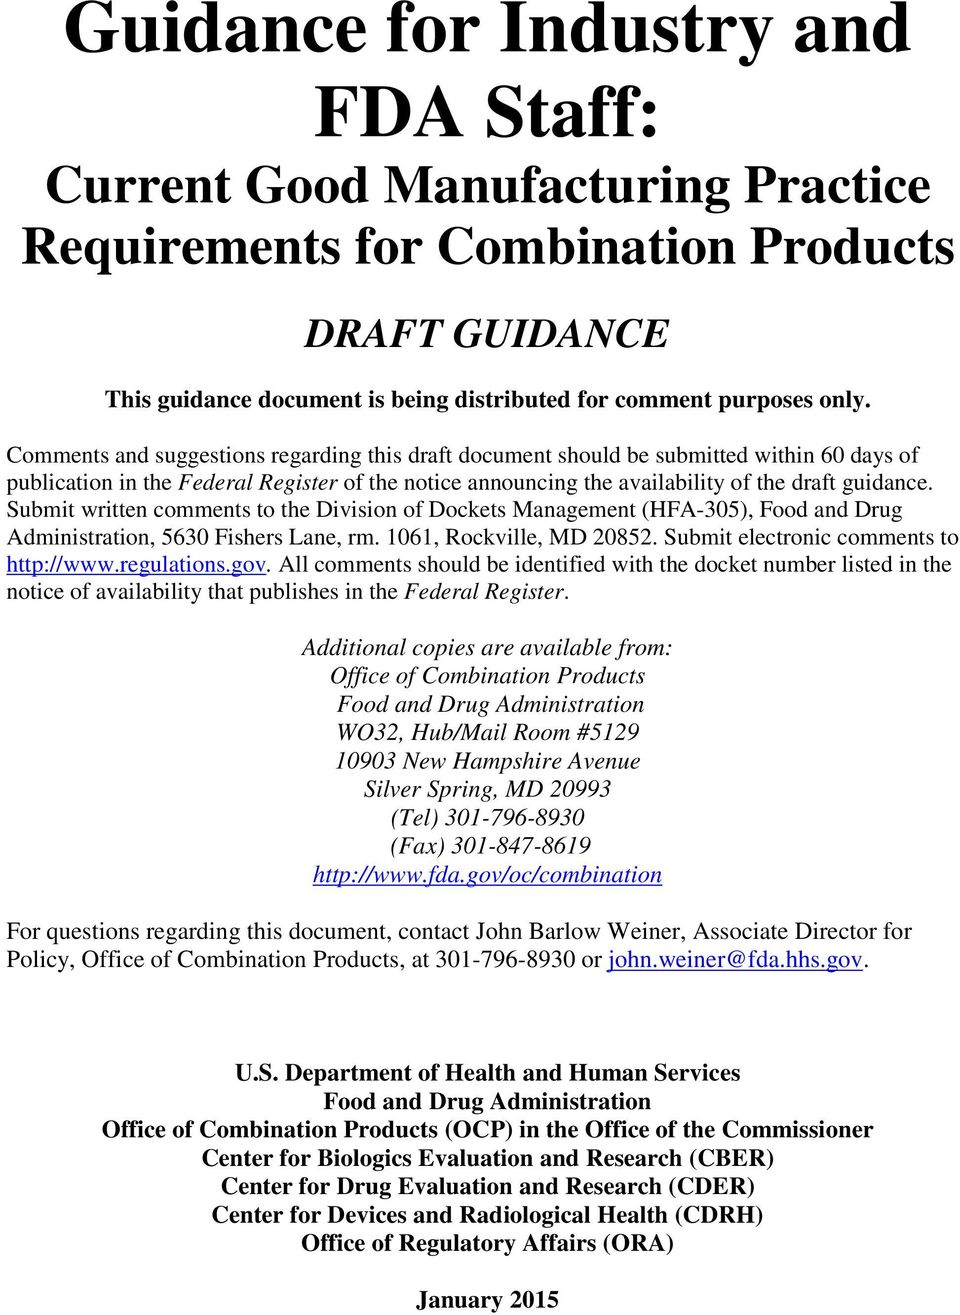 Submit written comments to the Division of Dockets Management (HFA-305), Food and Drug Administration, 5630 Fishers Lane, rm. 1061, Rockville, MD 20852. Submit electronic comments to http://www.